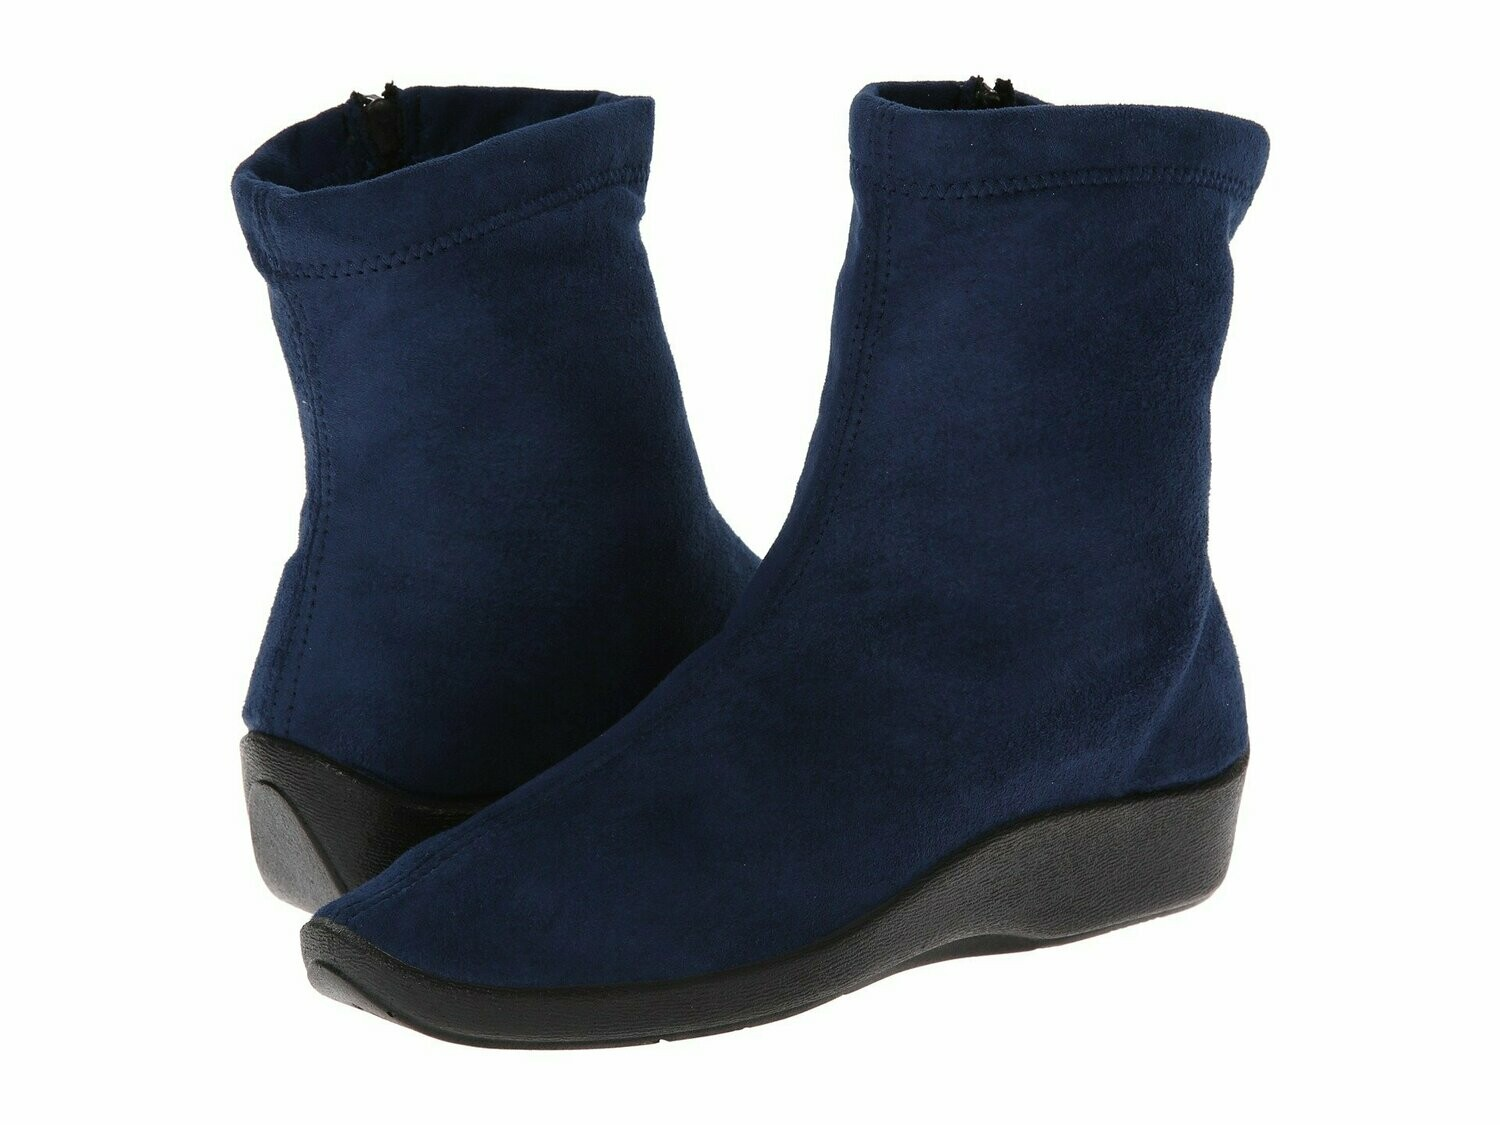 L8-Arco Navy Suede Boot